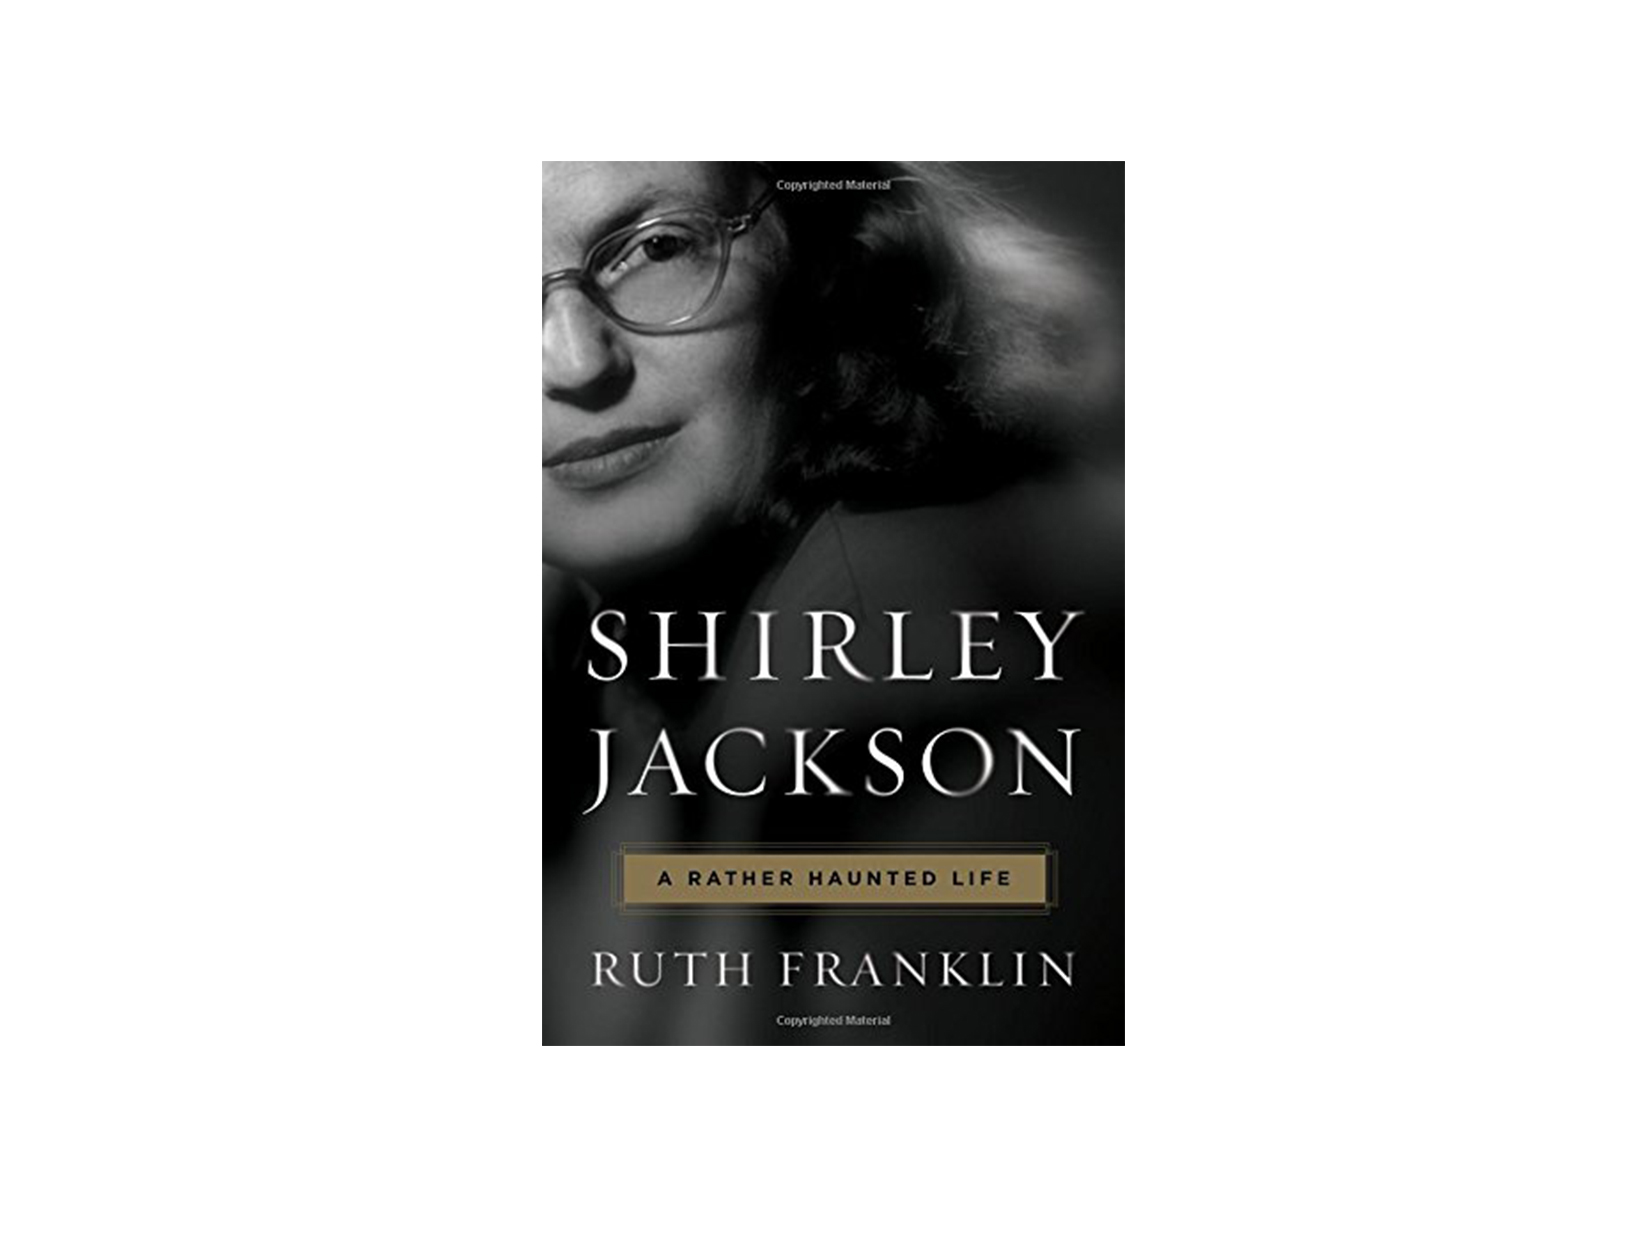 Shirley Jackson by Ruth Franklin